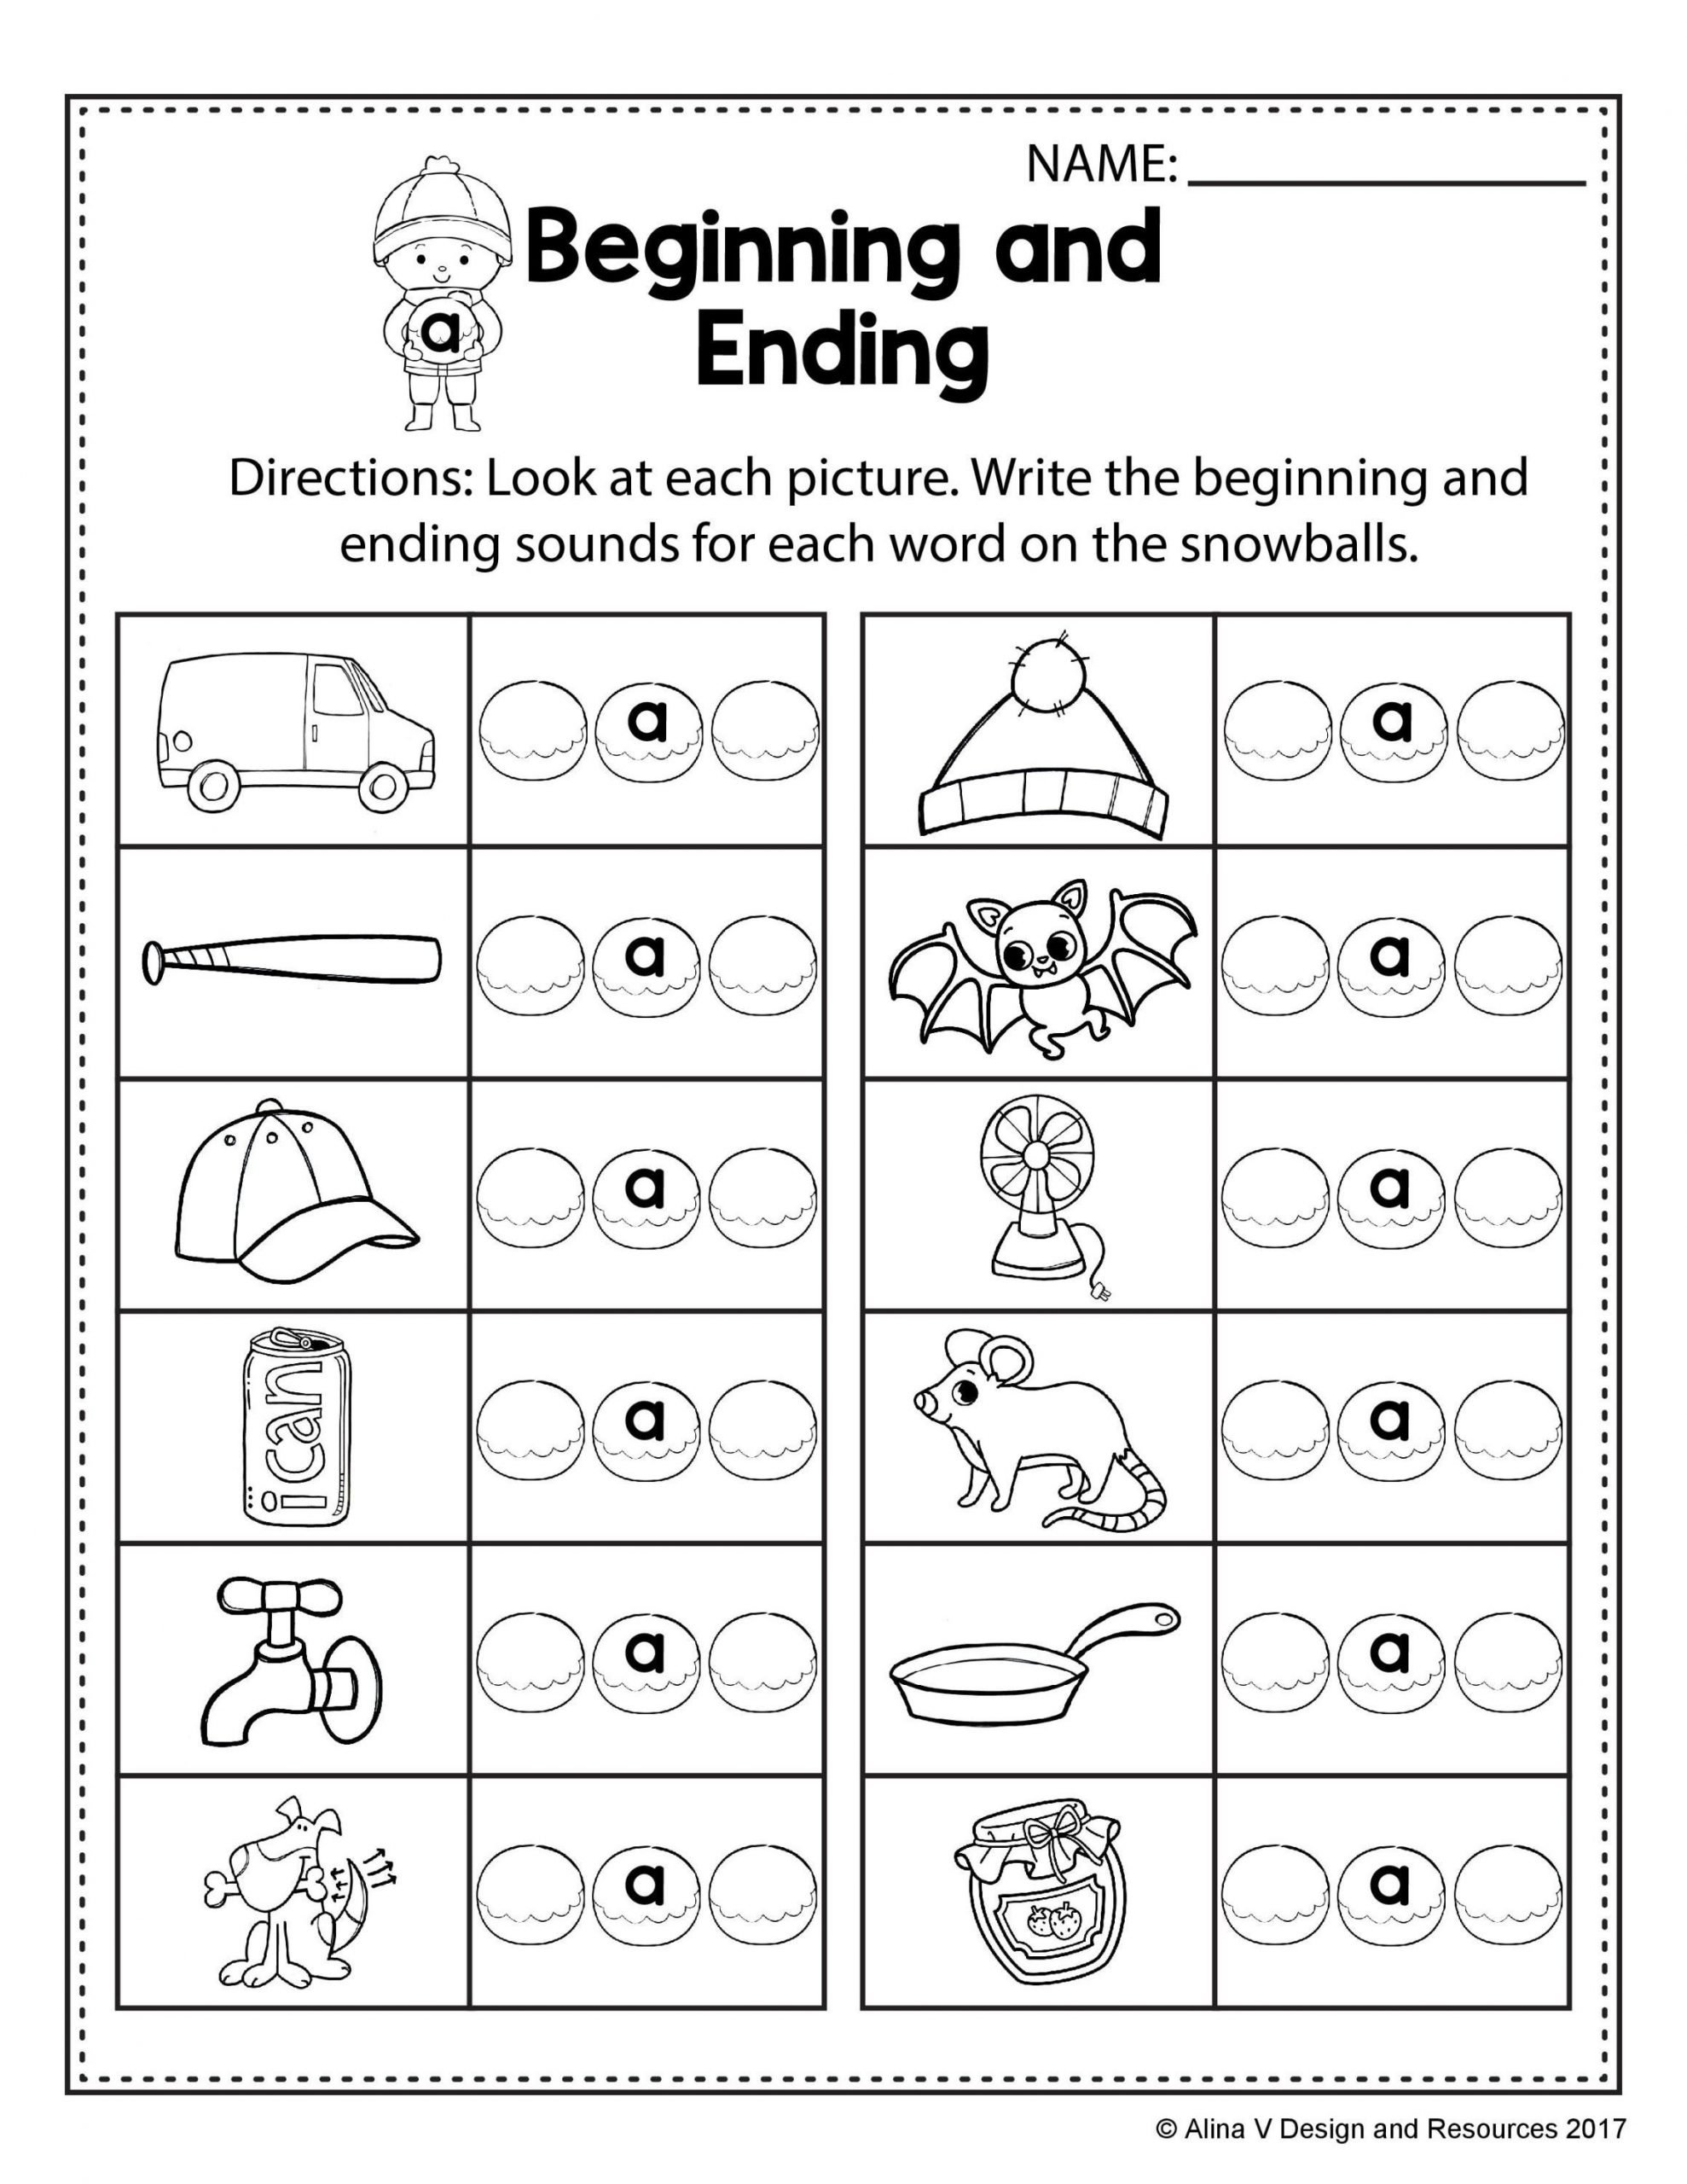 cvc worksheets for kindergarten pdf collection of free 30 cvc worksheets for kindergarten pdf ready to or print please do not use any of cvc worksheets for kindergarten pdf for